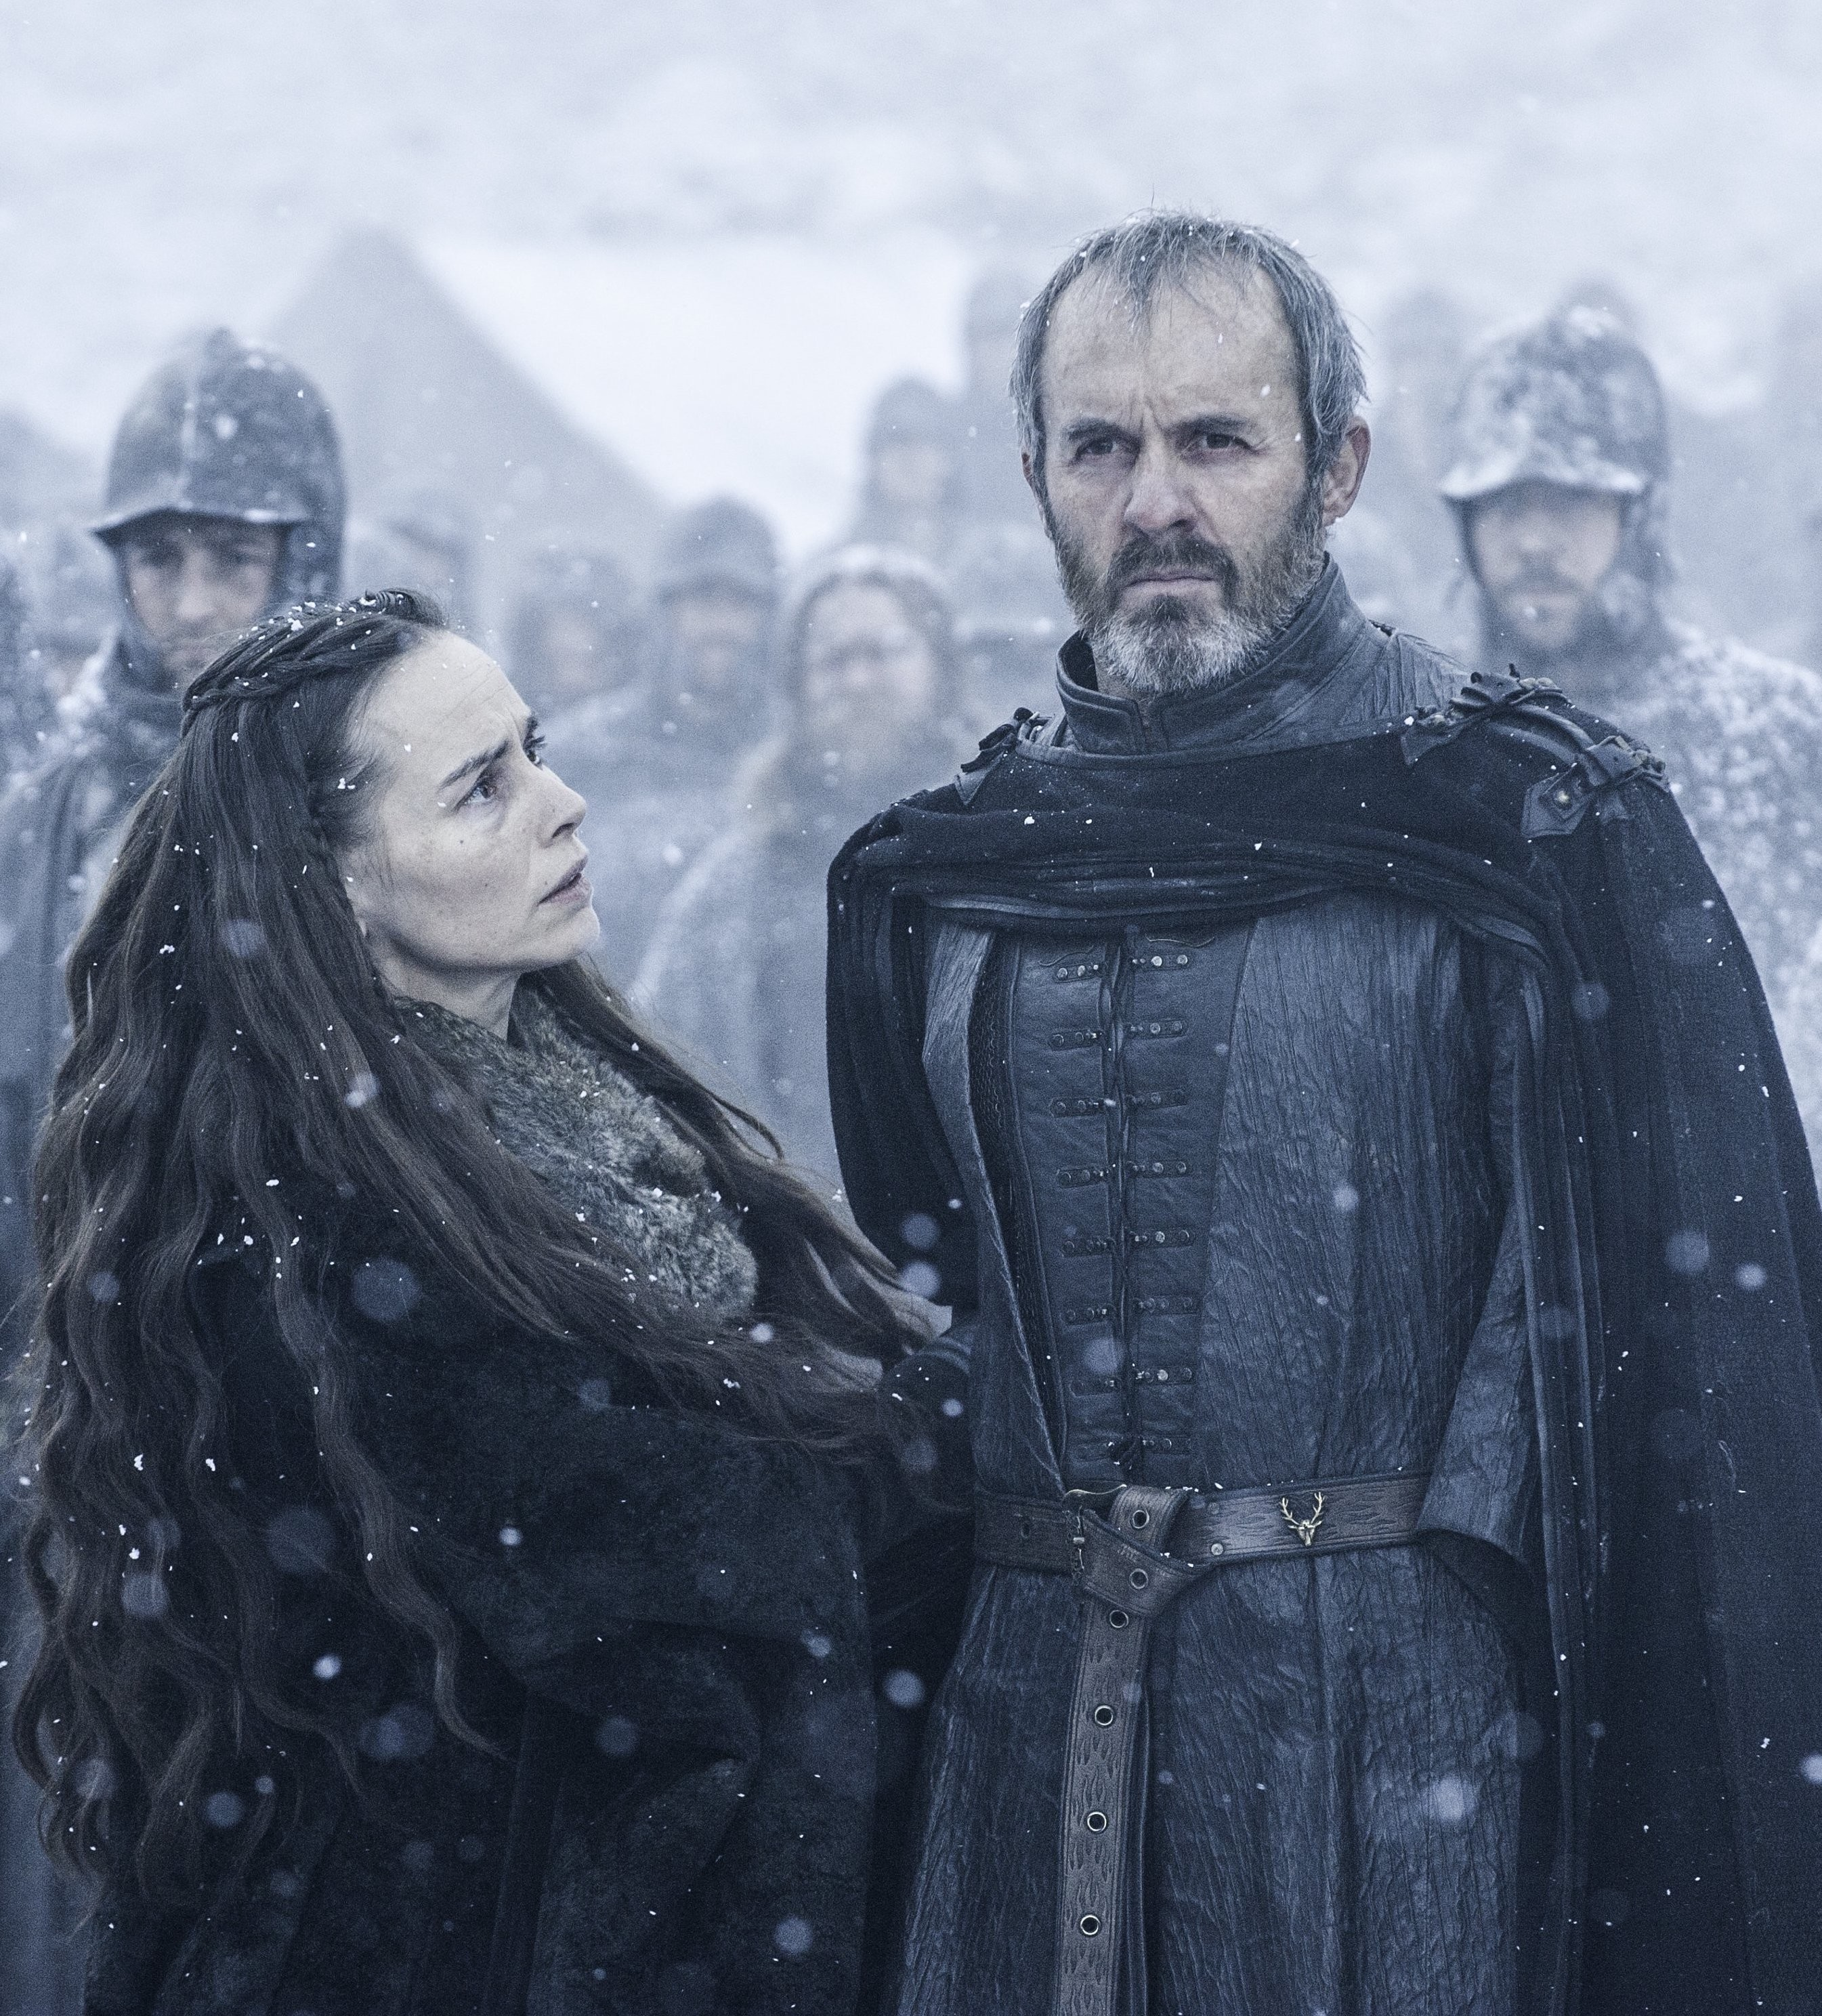 Game of thrones ratings may 27 celebrity